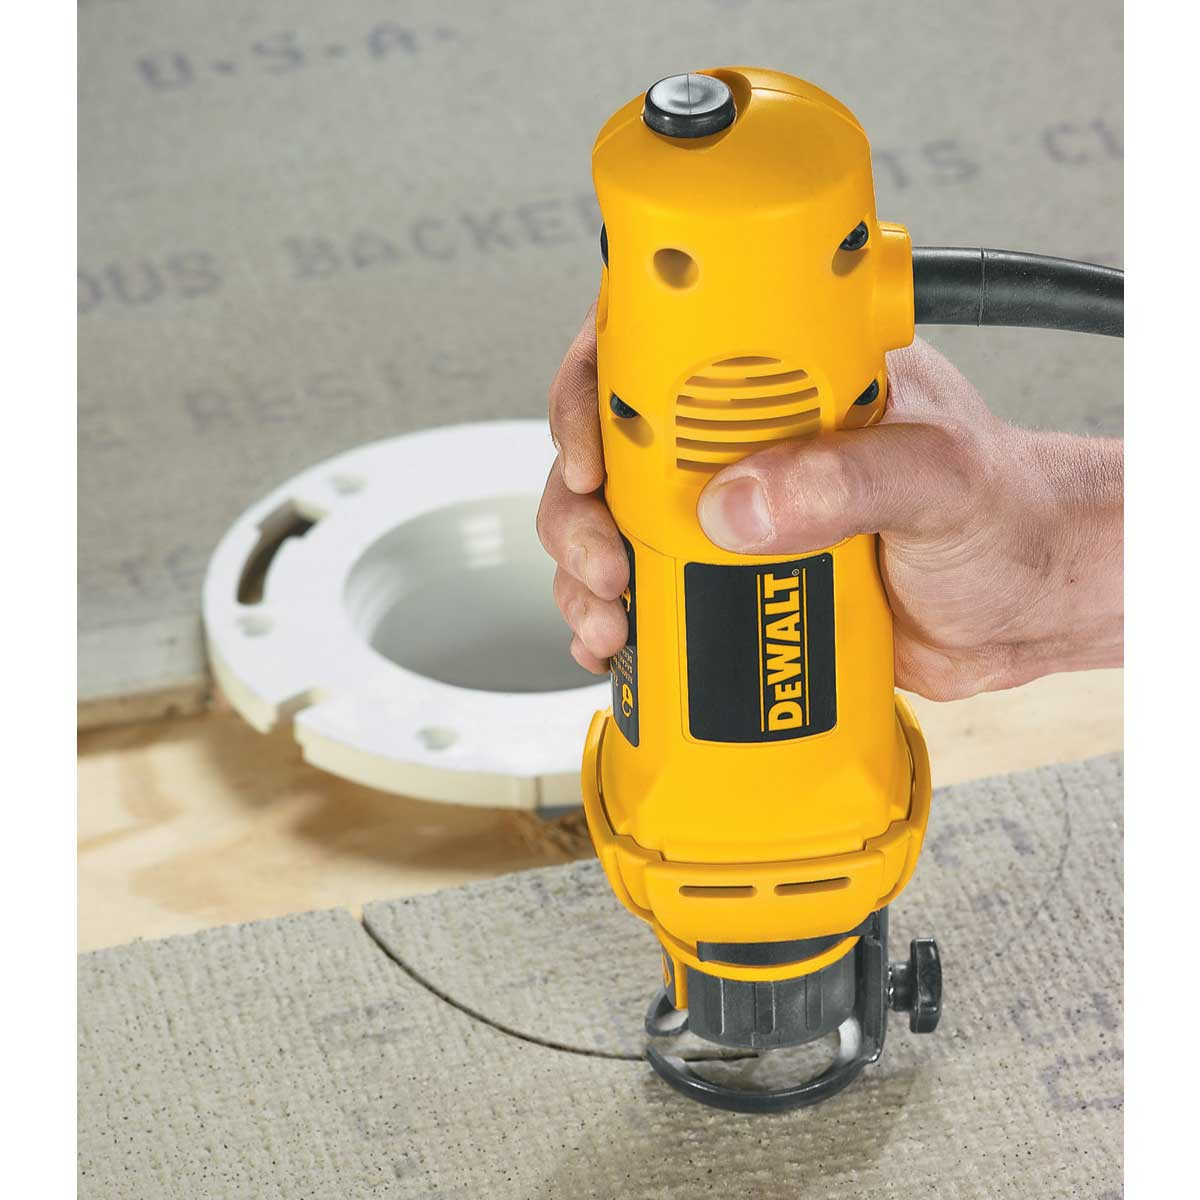 30,000 RPM DeWalt Cut Out Tool